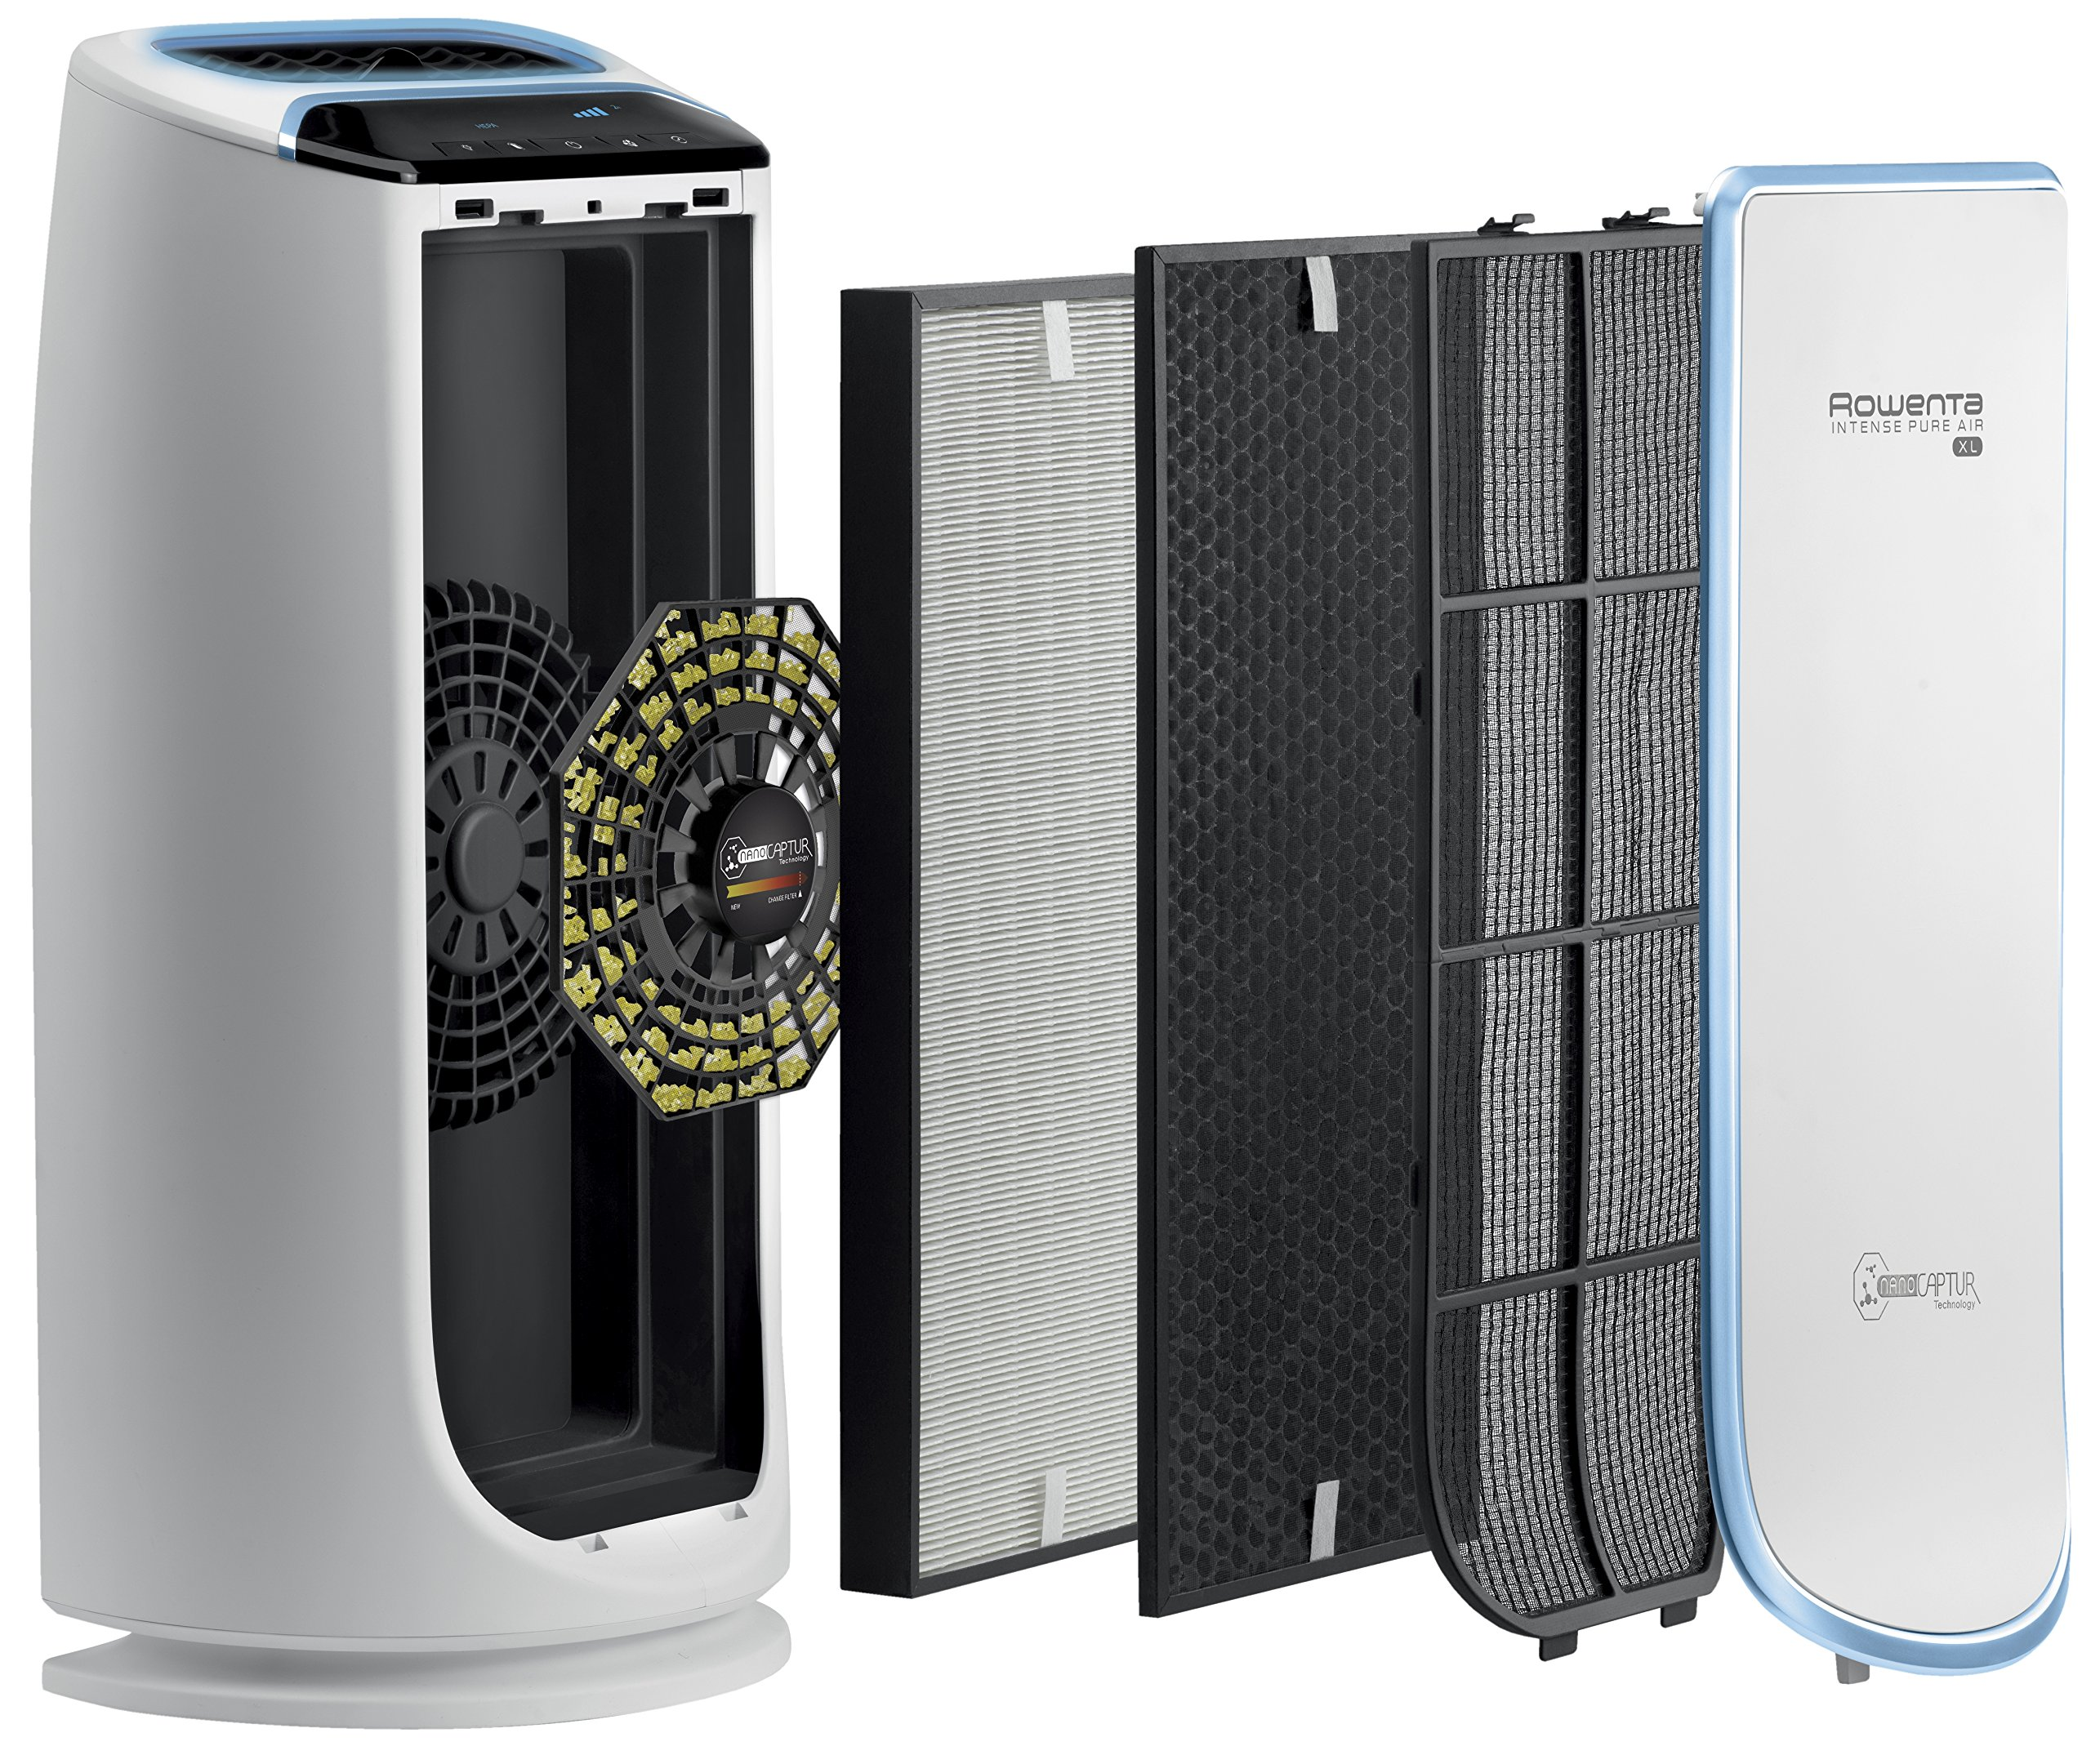 Rowenta PU6010 Intense Pure Air 800-Square Feet Air Purifier with 4-Filters Including HEPA Filter and Formaldehyde-Free Technology and Odor Eliminator, 29-Inch, White by Rowenta (Image #2)